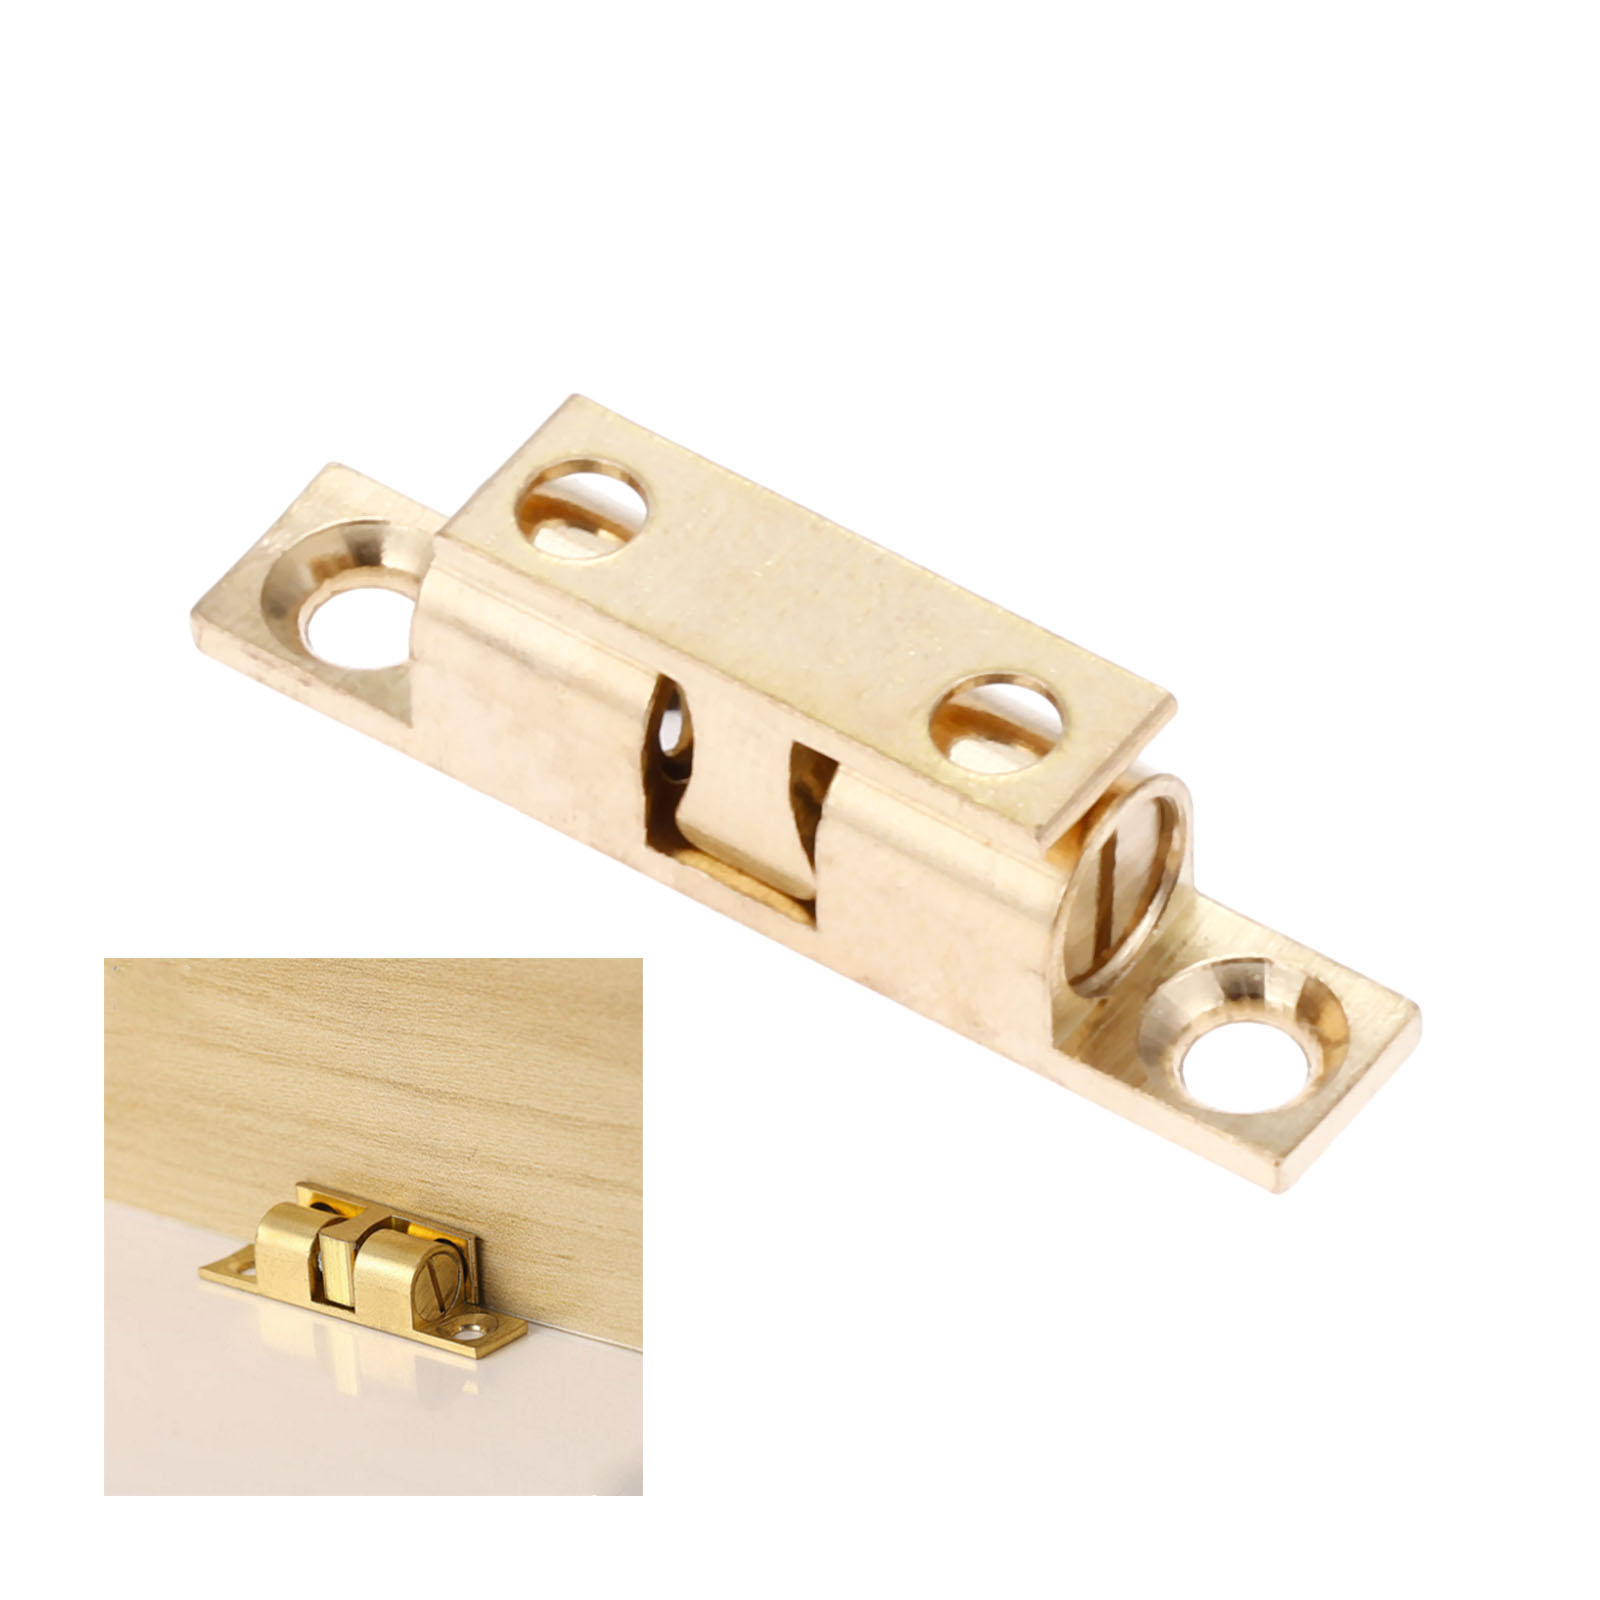 DRELD 1pc 42mm Pure Copper Double Ball Latch Clip Lock Cabinet Door Catches Touch Beads Bronze Brass Color Hardware Accessories